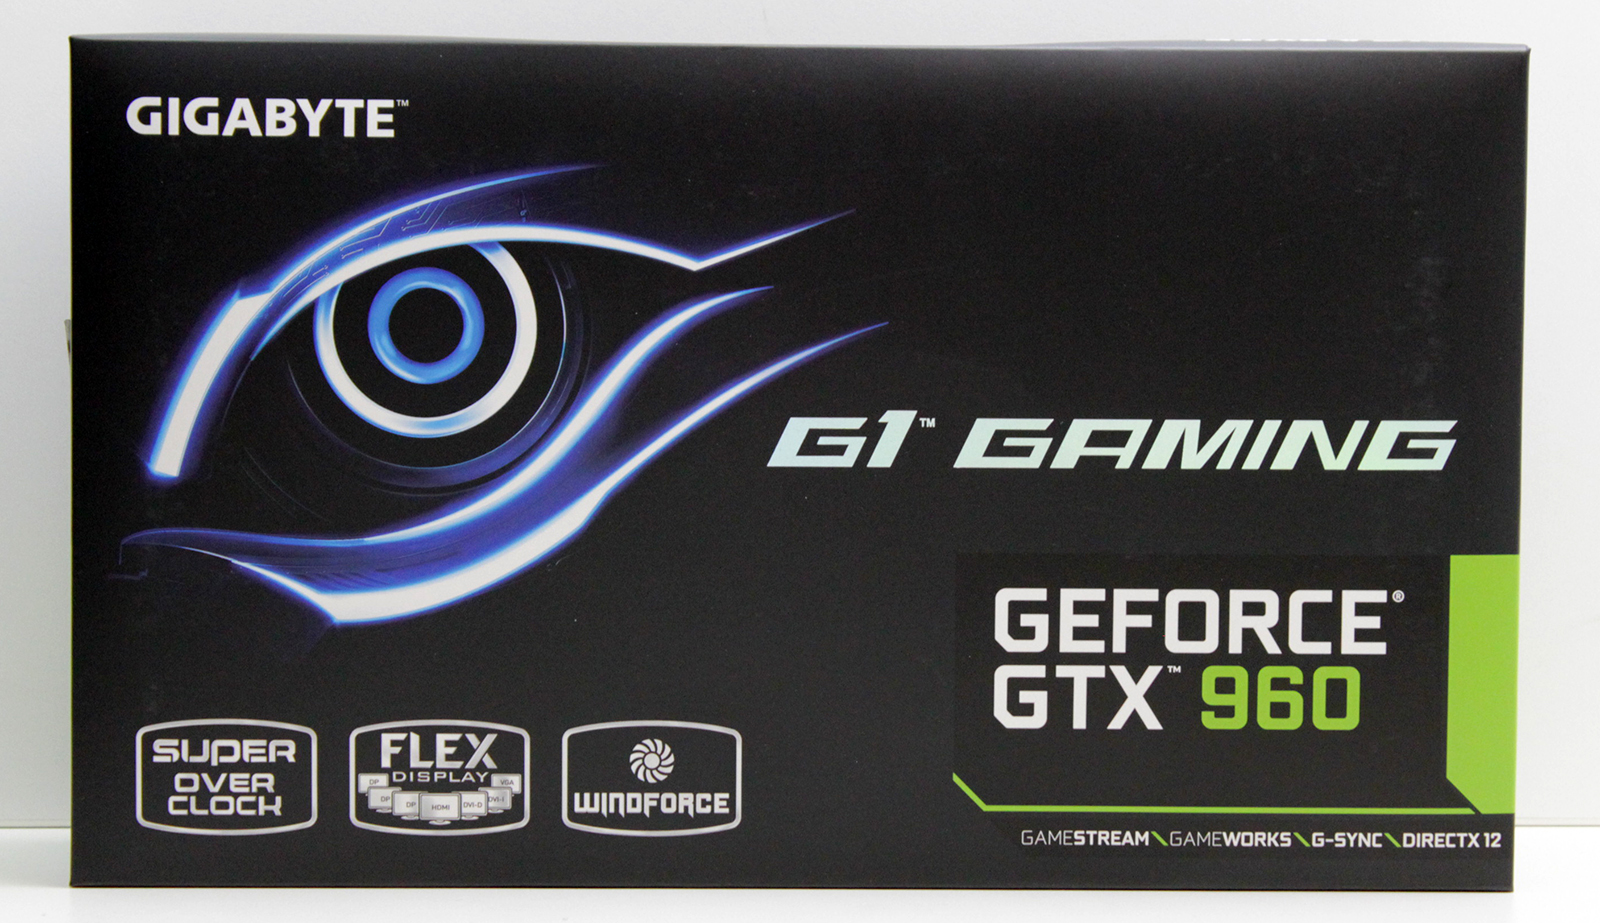 1 Gigabyte GTX 960 G1 Gaming box